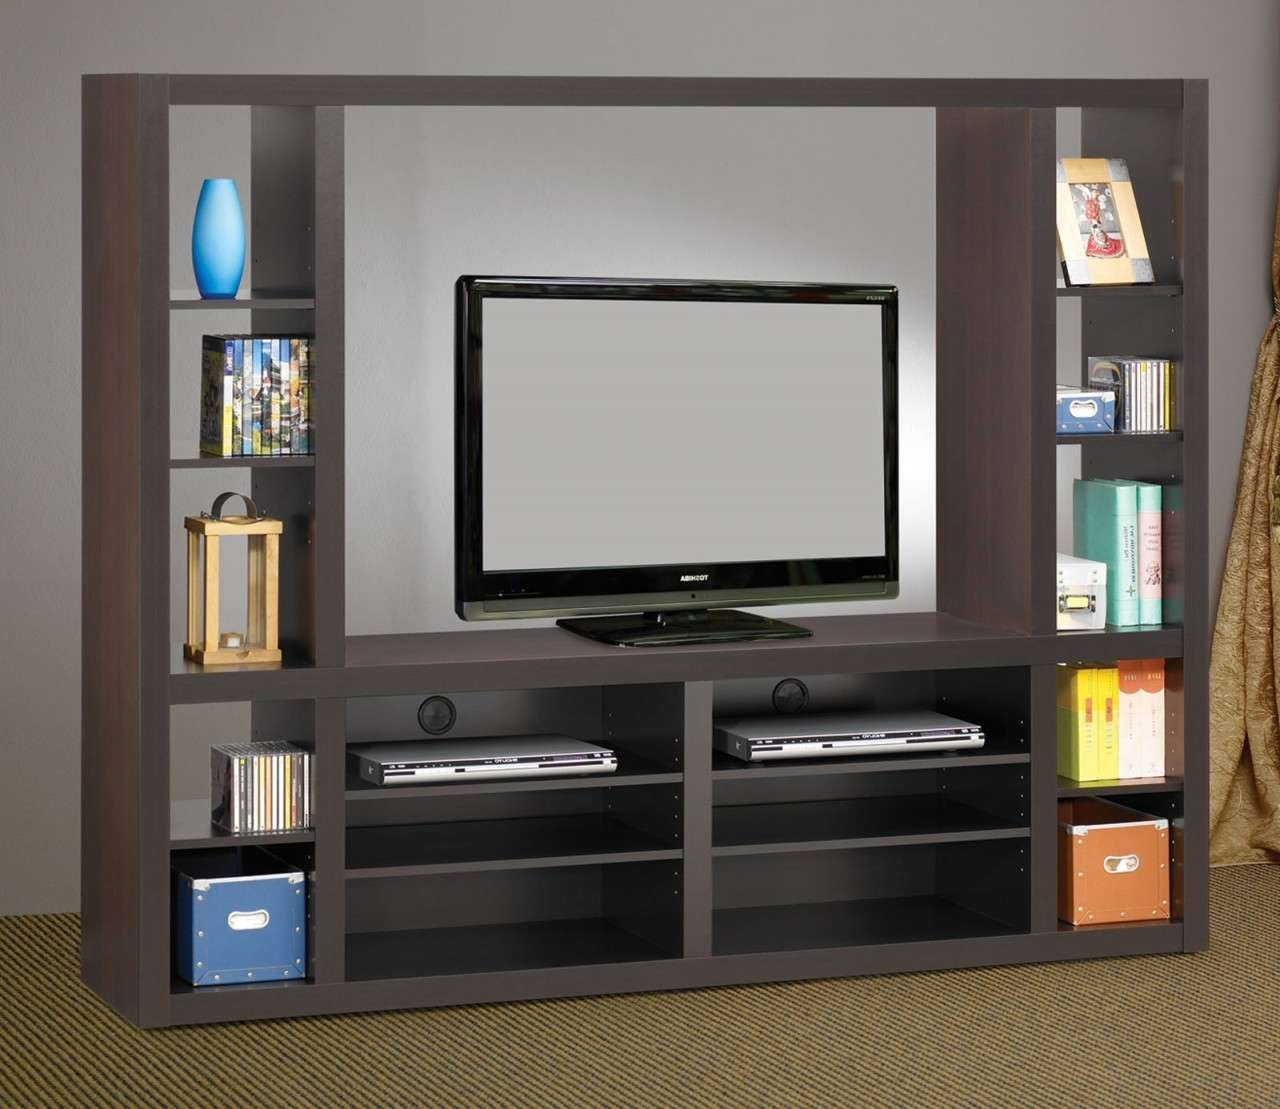 Flat Screen Tv Wall Unit Idea – Wall Units Design Ideas For Modern Tv Cabinets For Flat Screens (View 4 of 20)